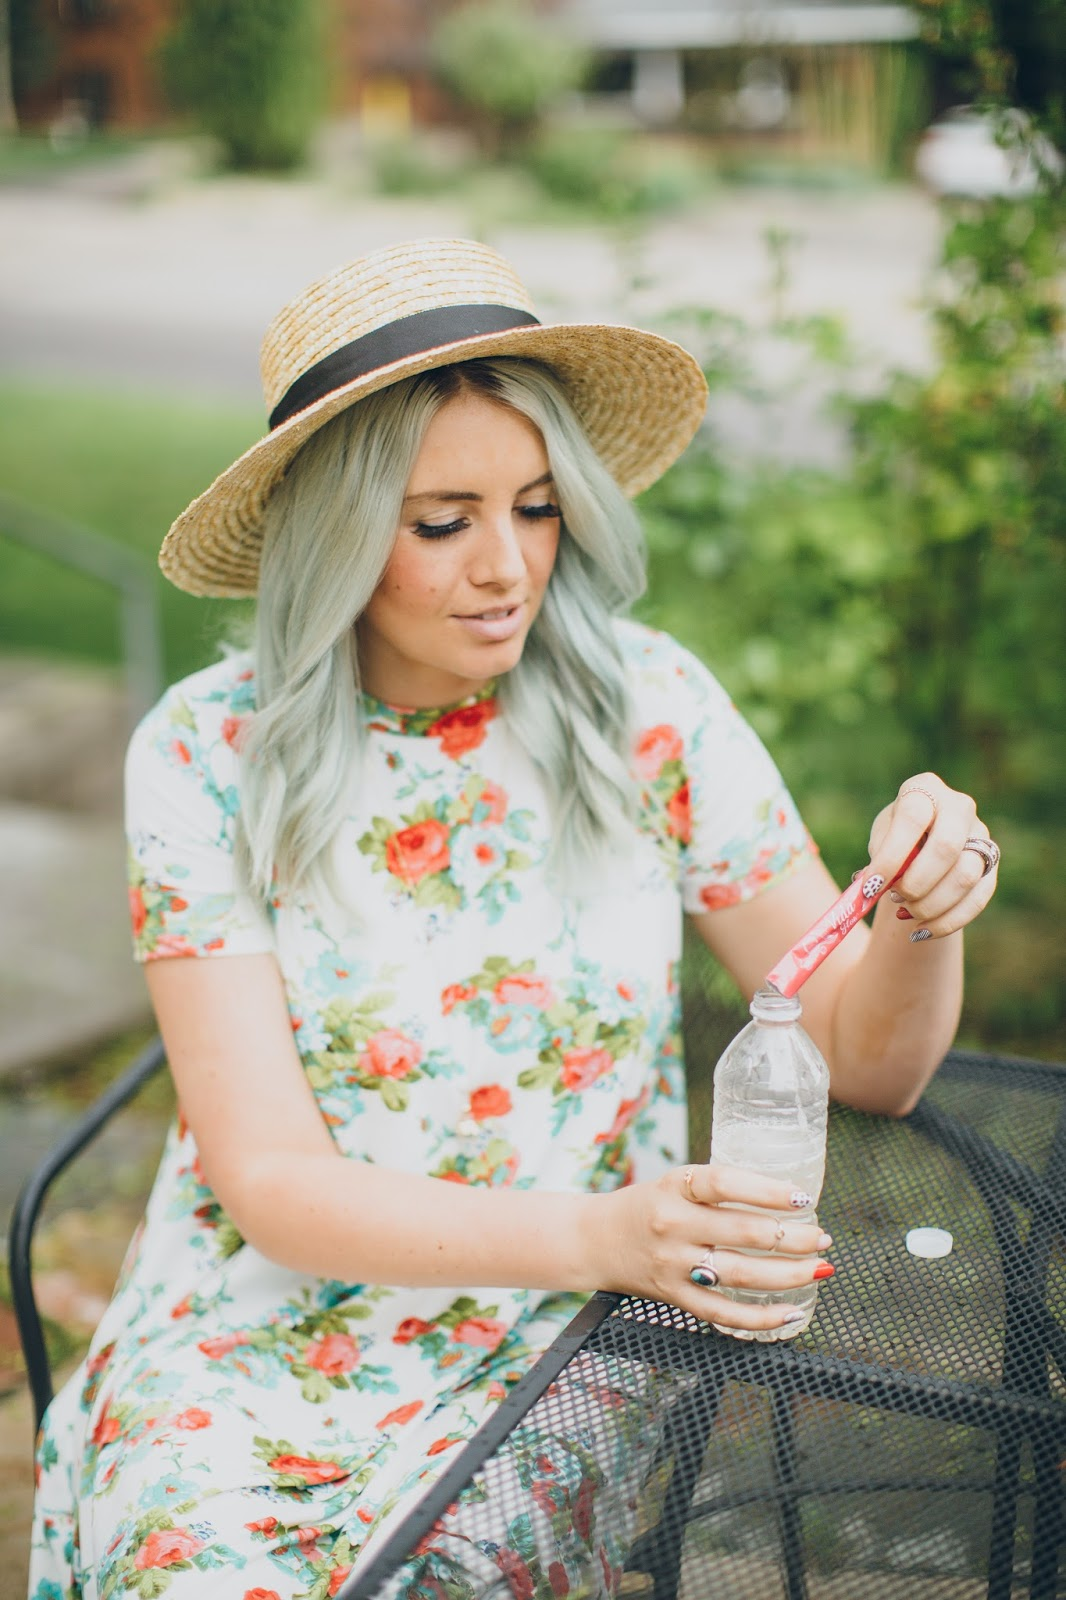 Floral Dress, Utah Fashion Blogger, Sun hat